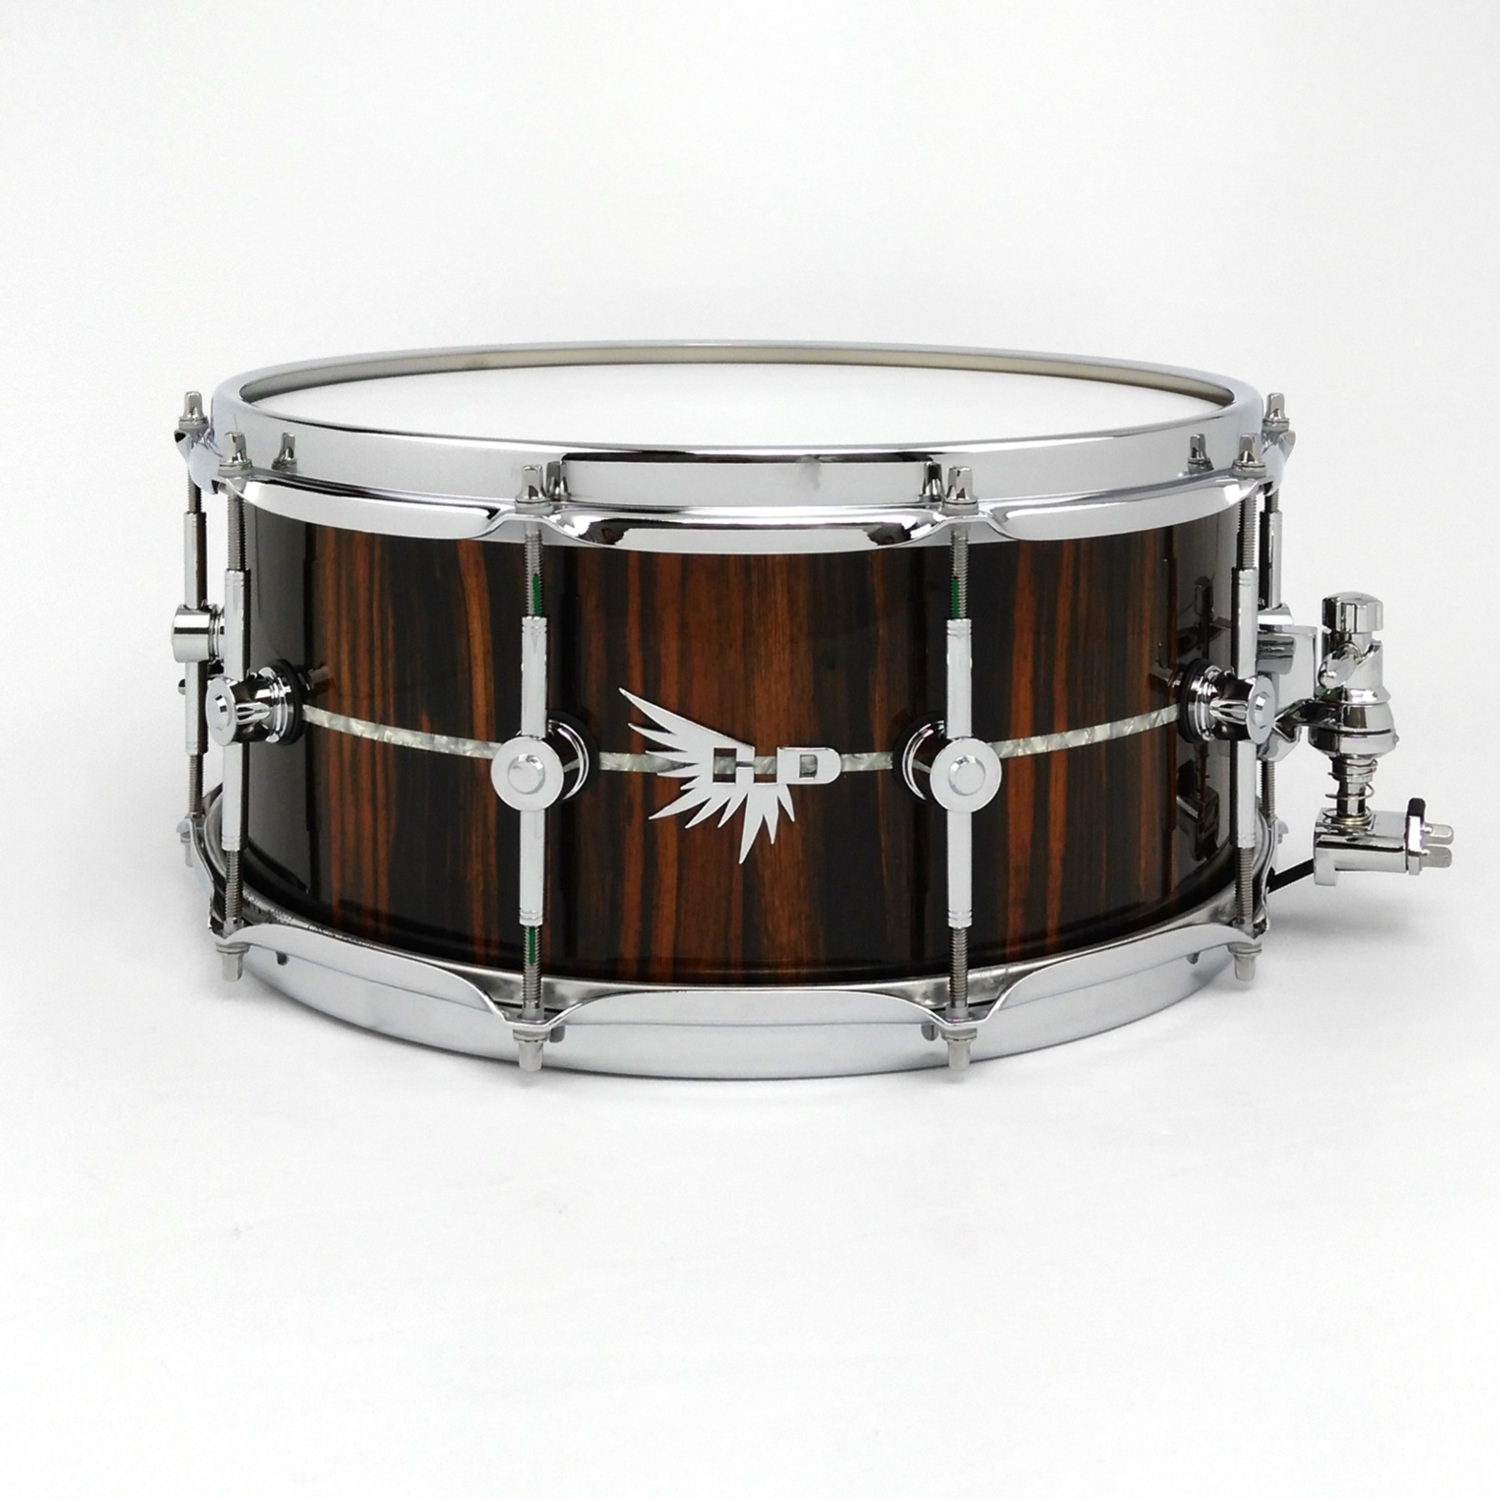 Craviotto Snare Drum Hendrix Drums Stave Macassar Ebony Inlay HD